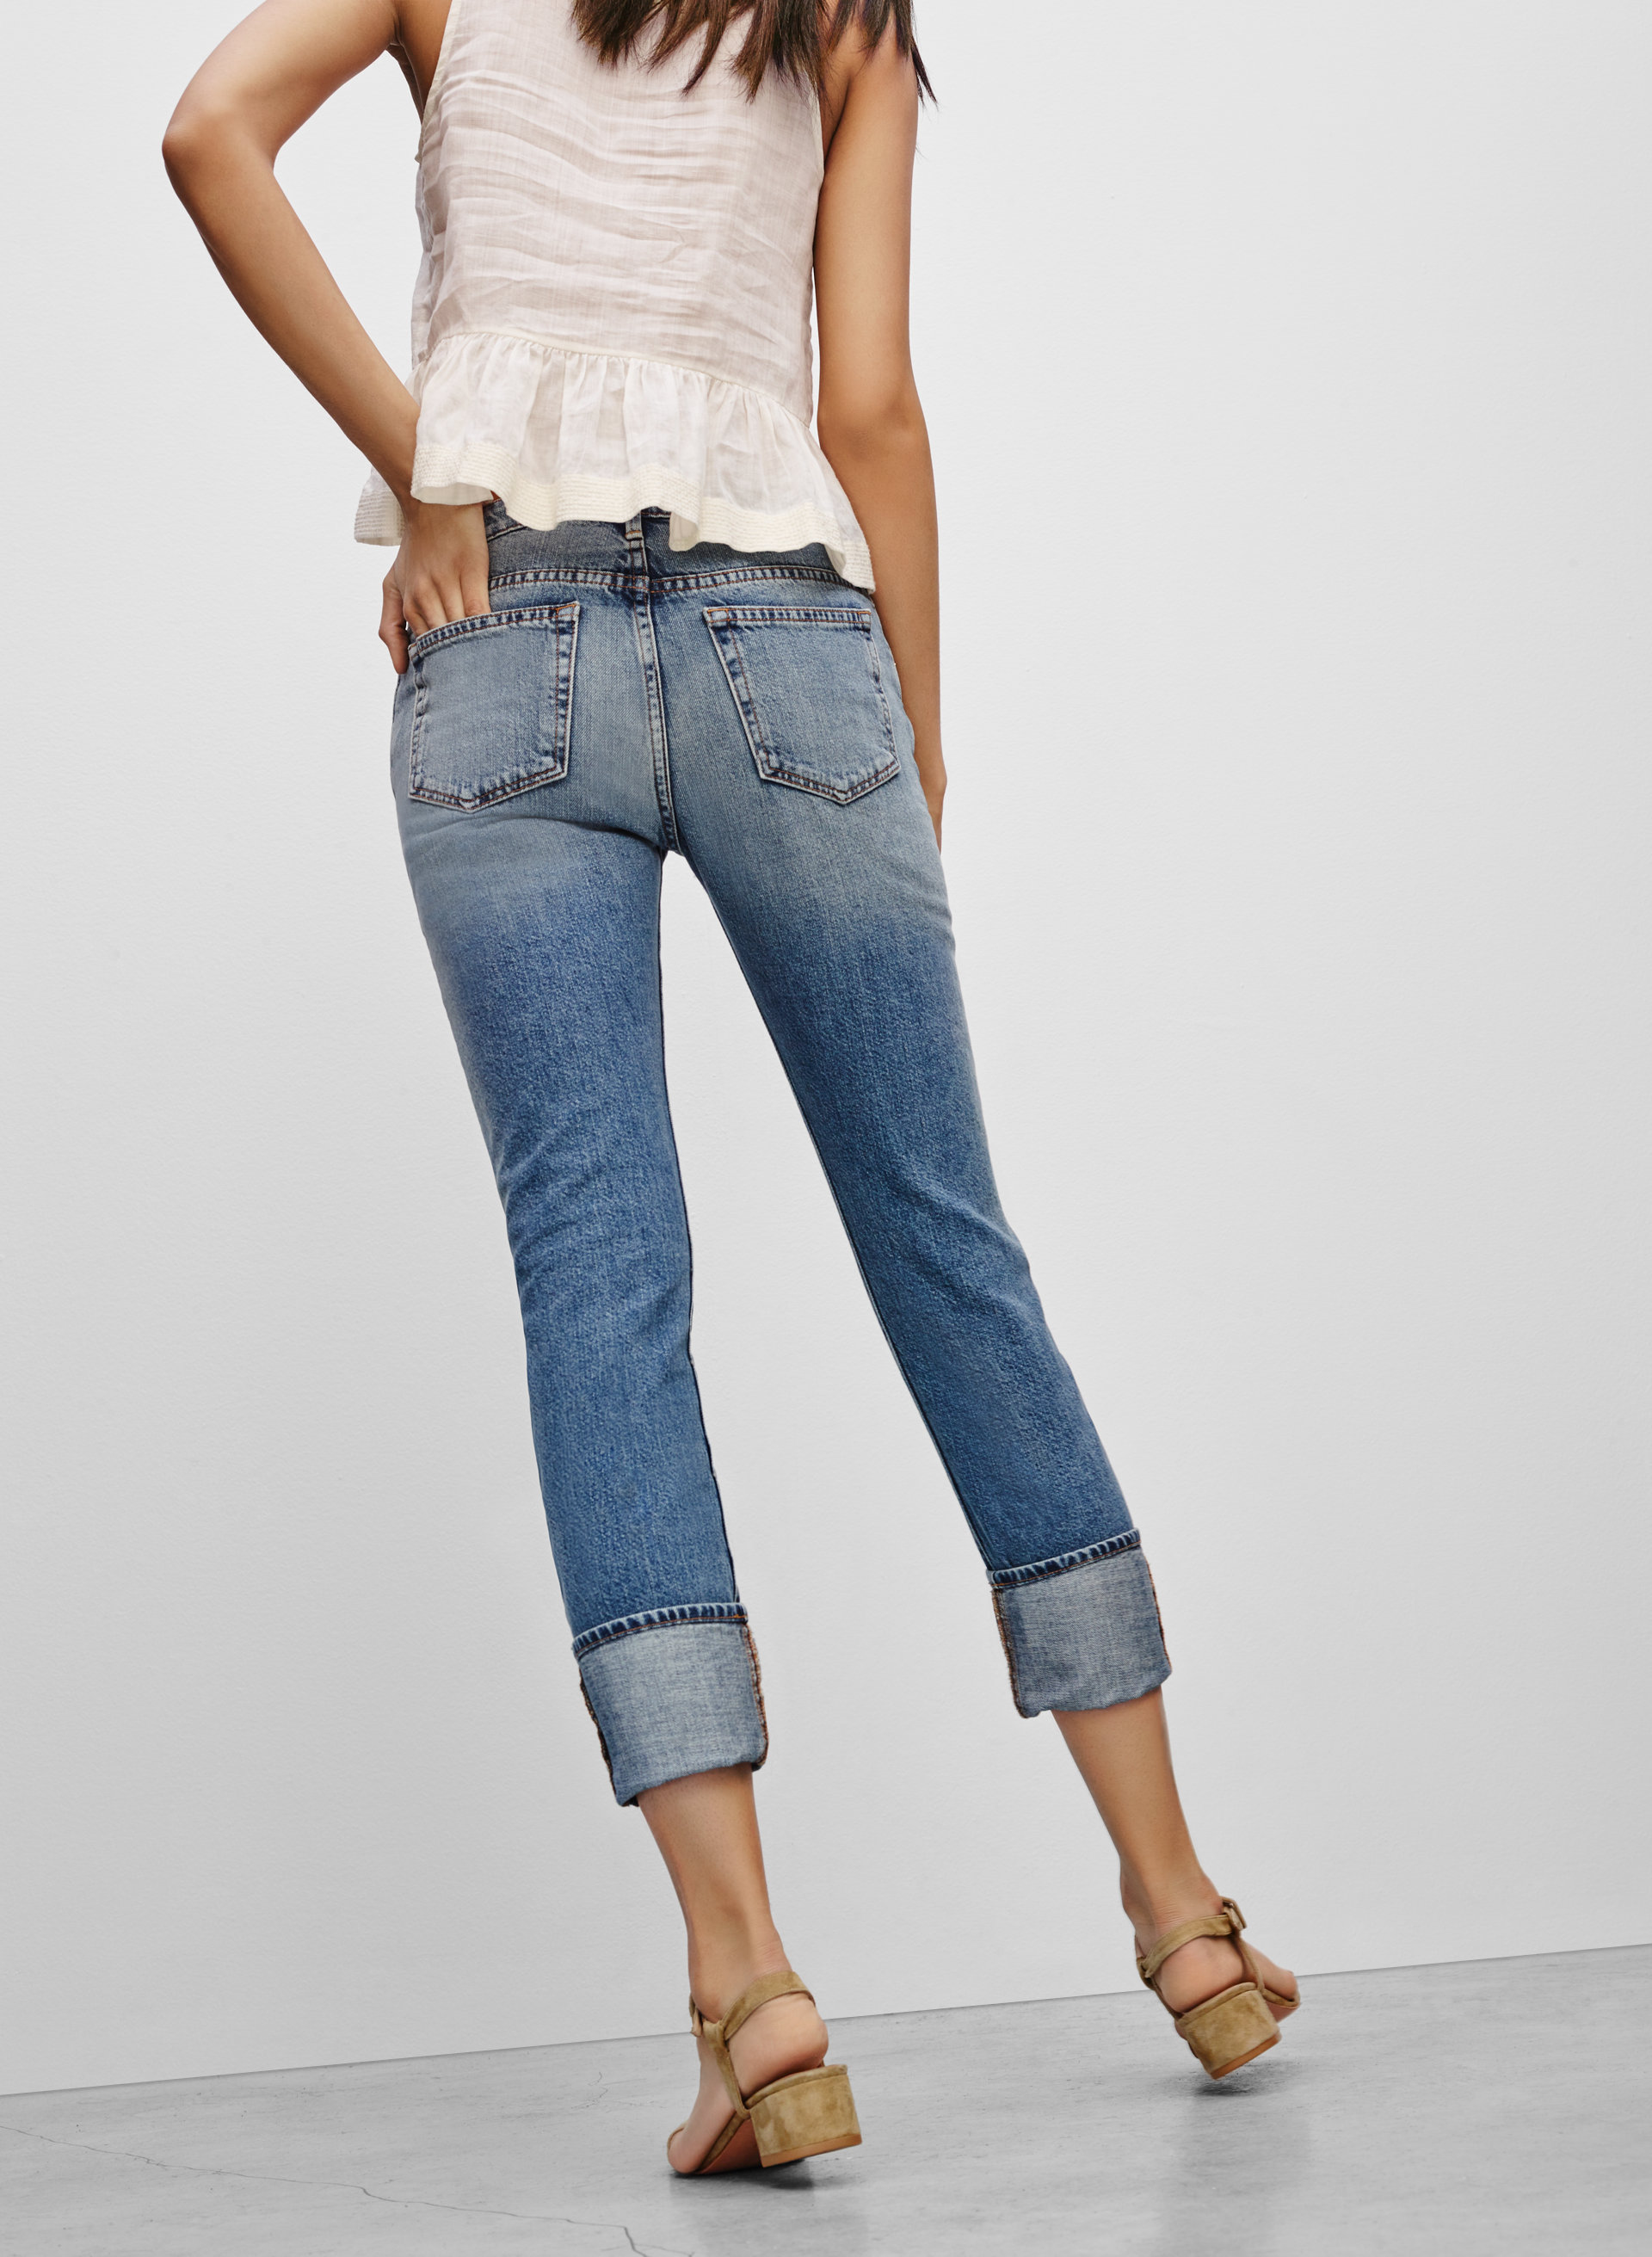 Enjoyable Frame Le Garcon Jeans | Enchanting Frame Denim Le Garcon